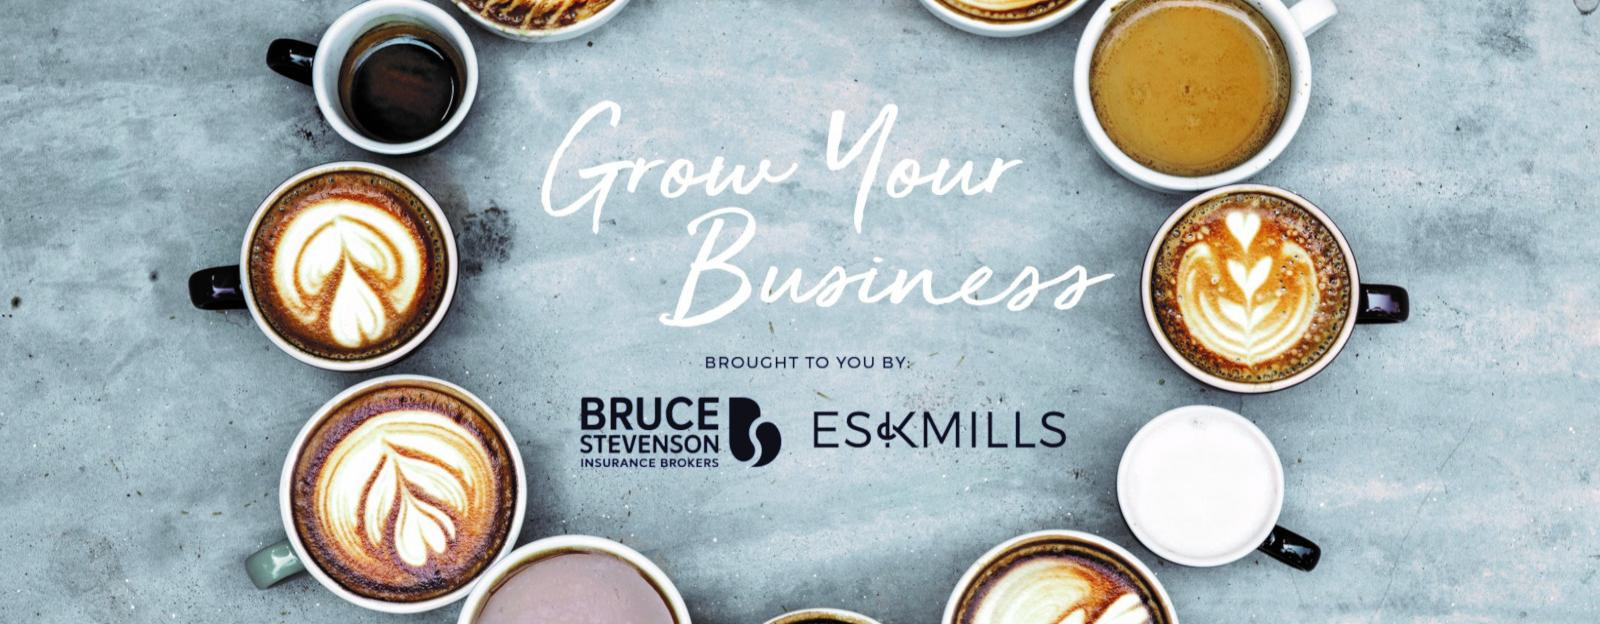 Grow your business event 1